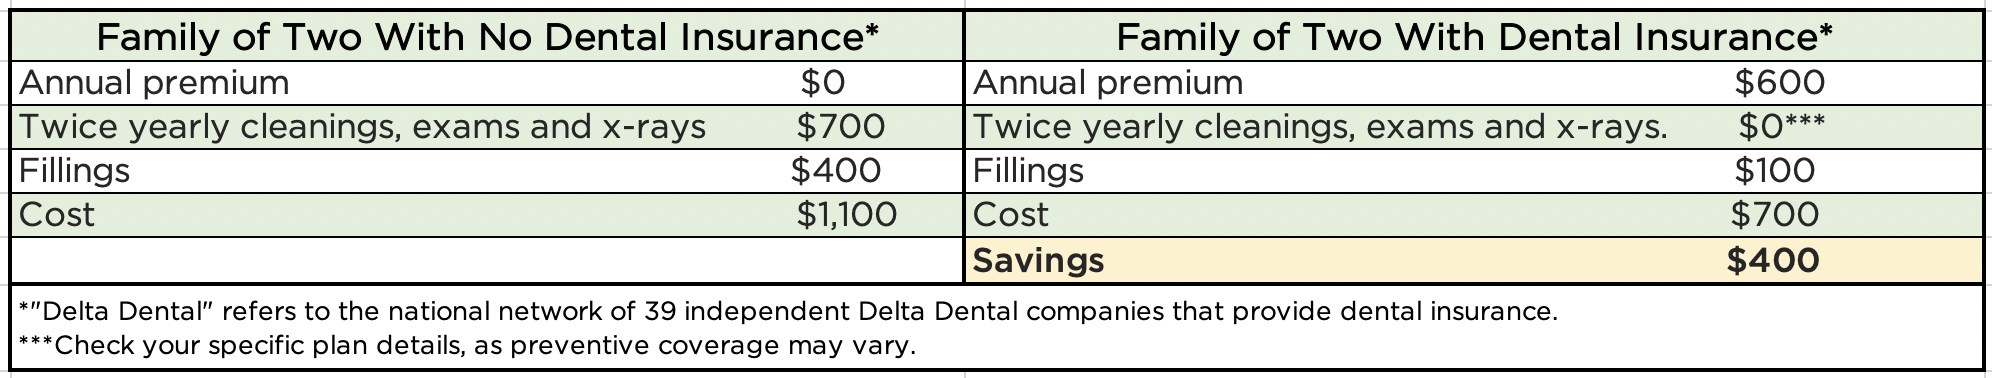 The average cost savings for a family of two with Delta Dental is about $800 a year when compared to cost without coverage.]